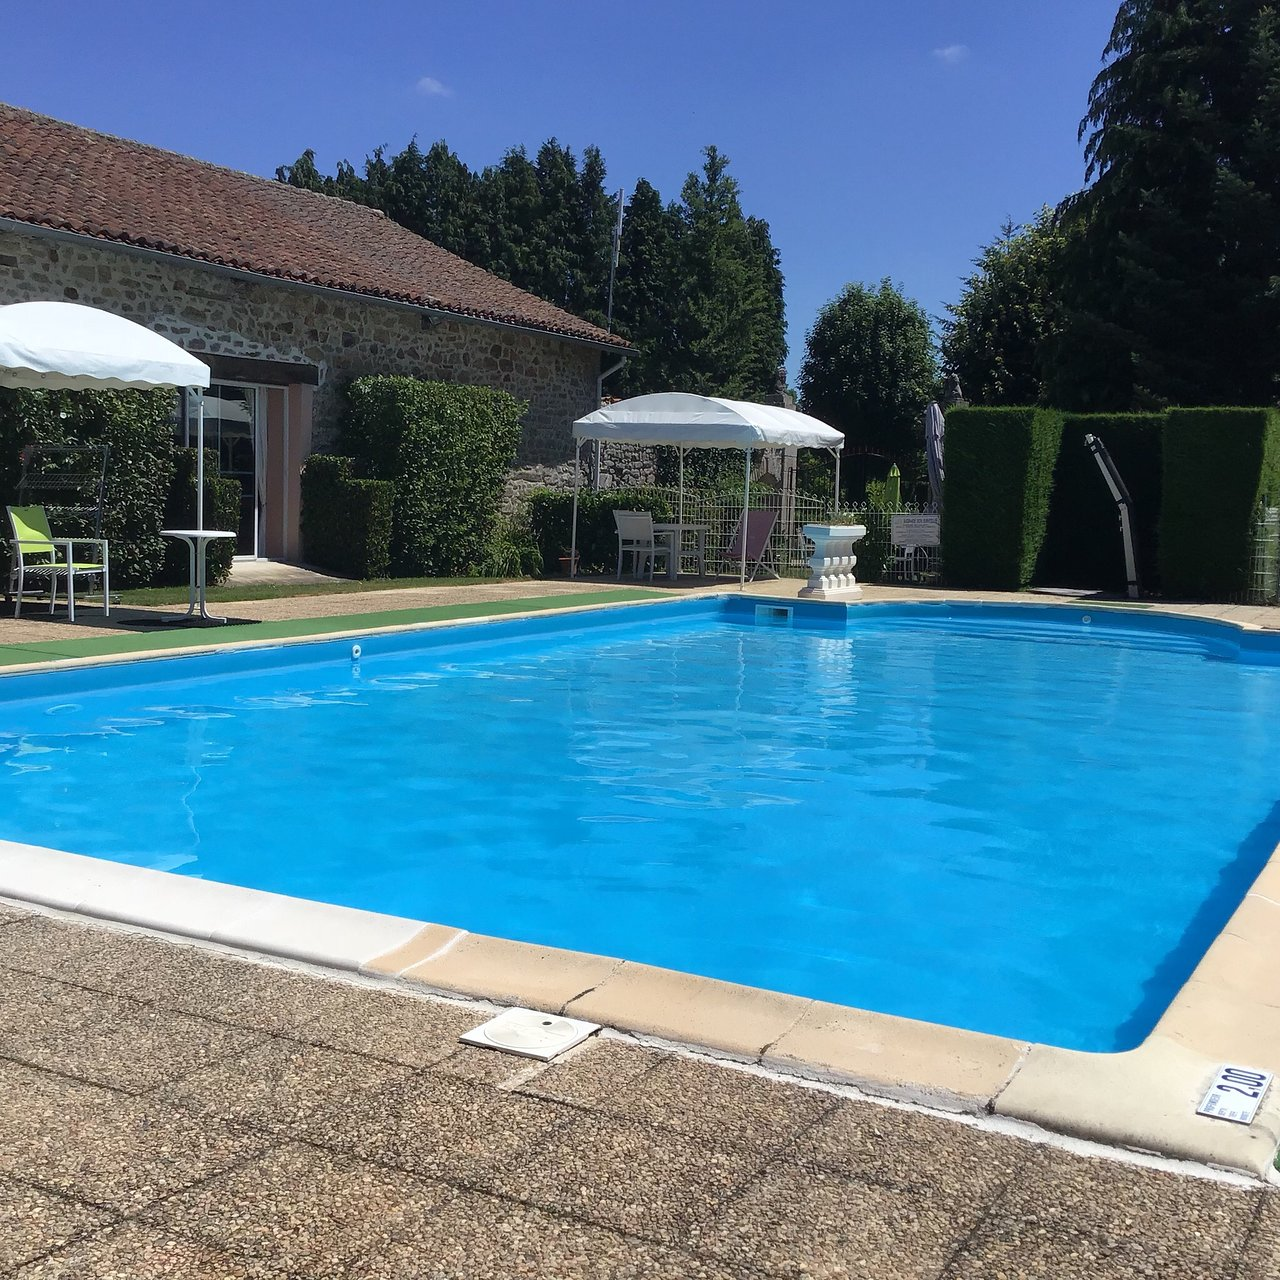 Camping Limoges Zwembad Camping Chateau De Leychoisier Updated 2019 Prices Campground